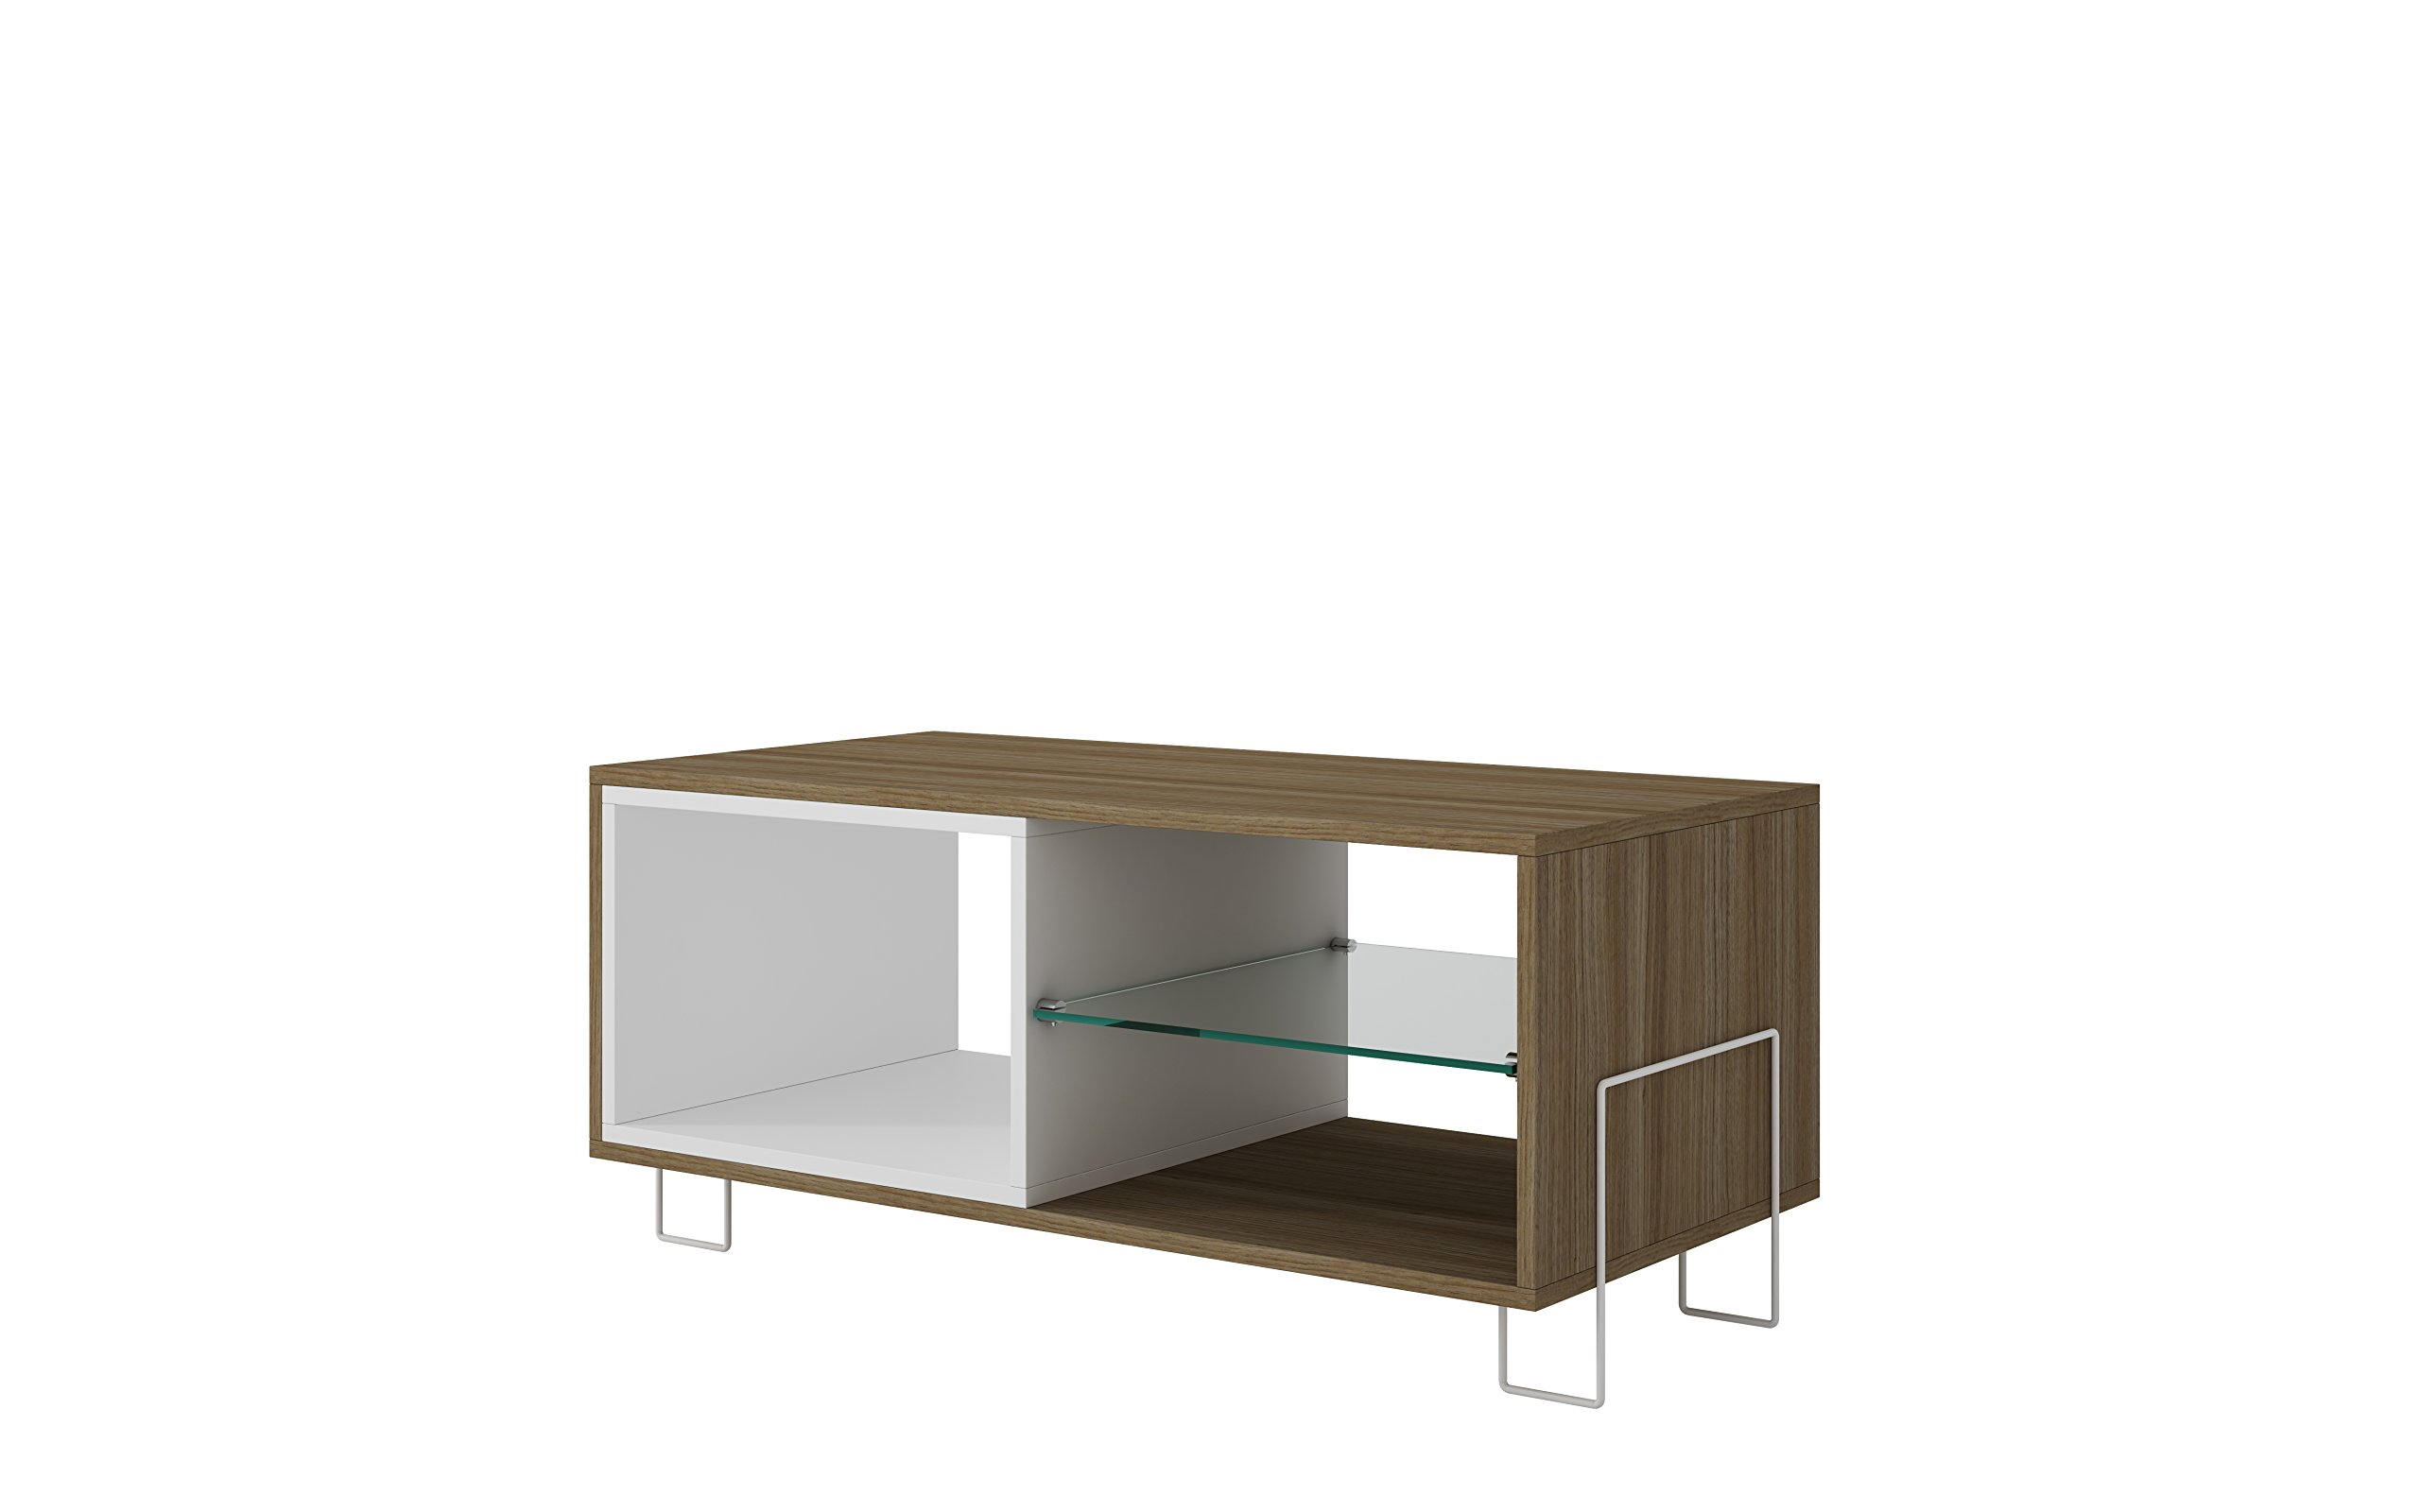 Manhattan Comfort Boden Collection Contemporary TV Stand With Tempered Glass Shelf, Cubby and Shelf, Wood/White by Manhattan Comfort